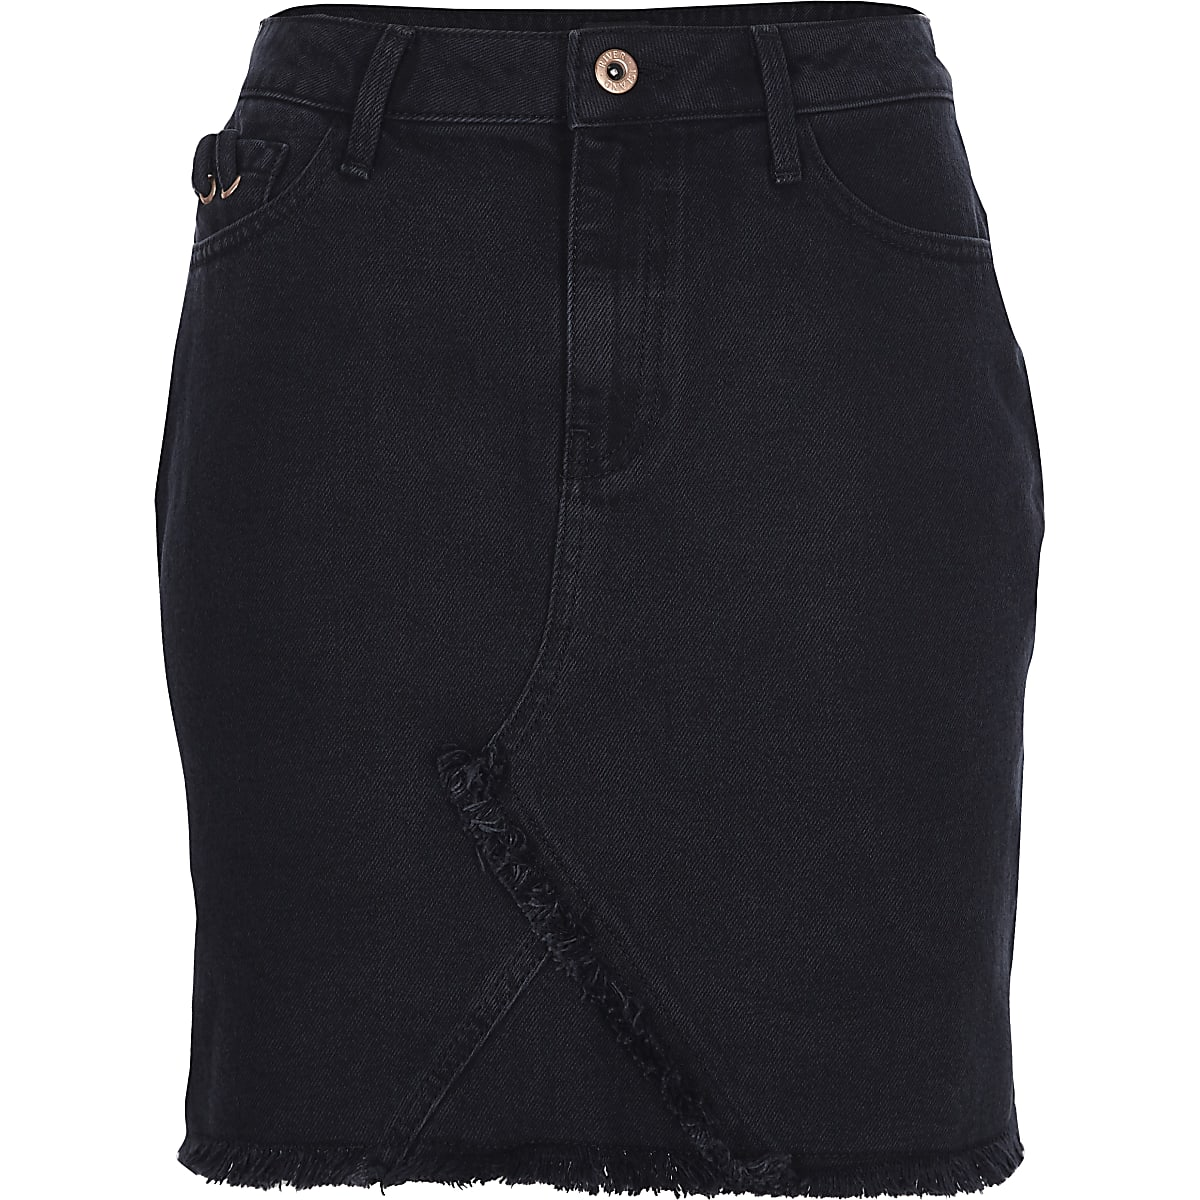 d207e7787 Black frayed hem denim skirt - Mini Skirts - Skirts - women